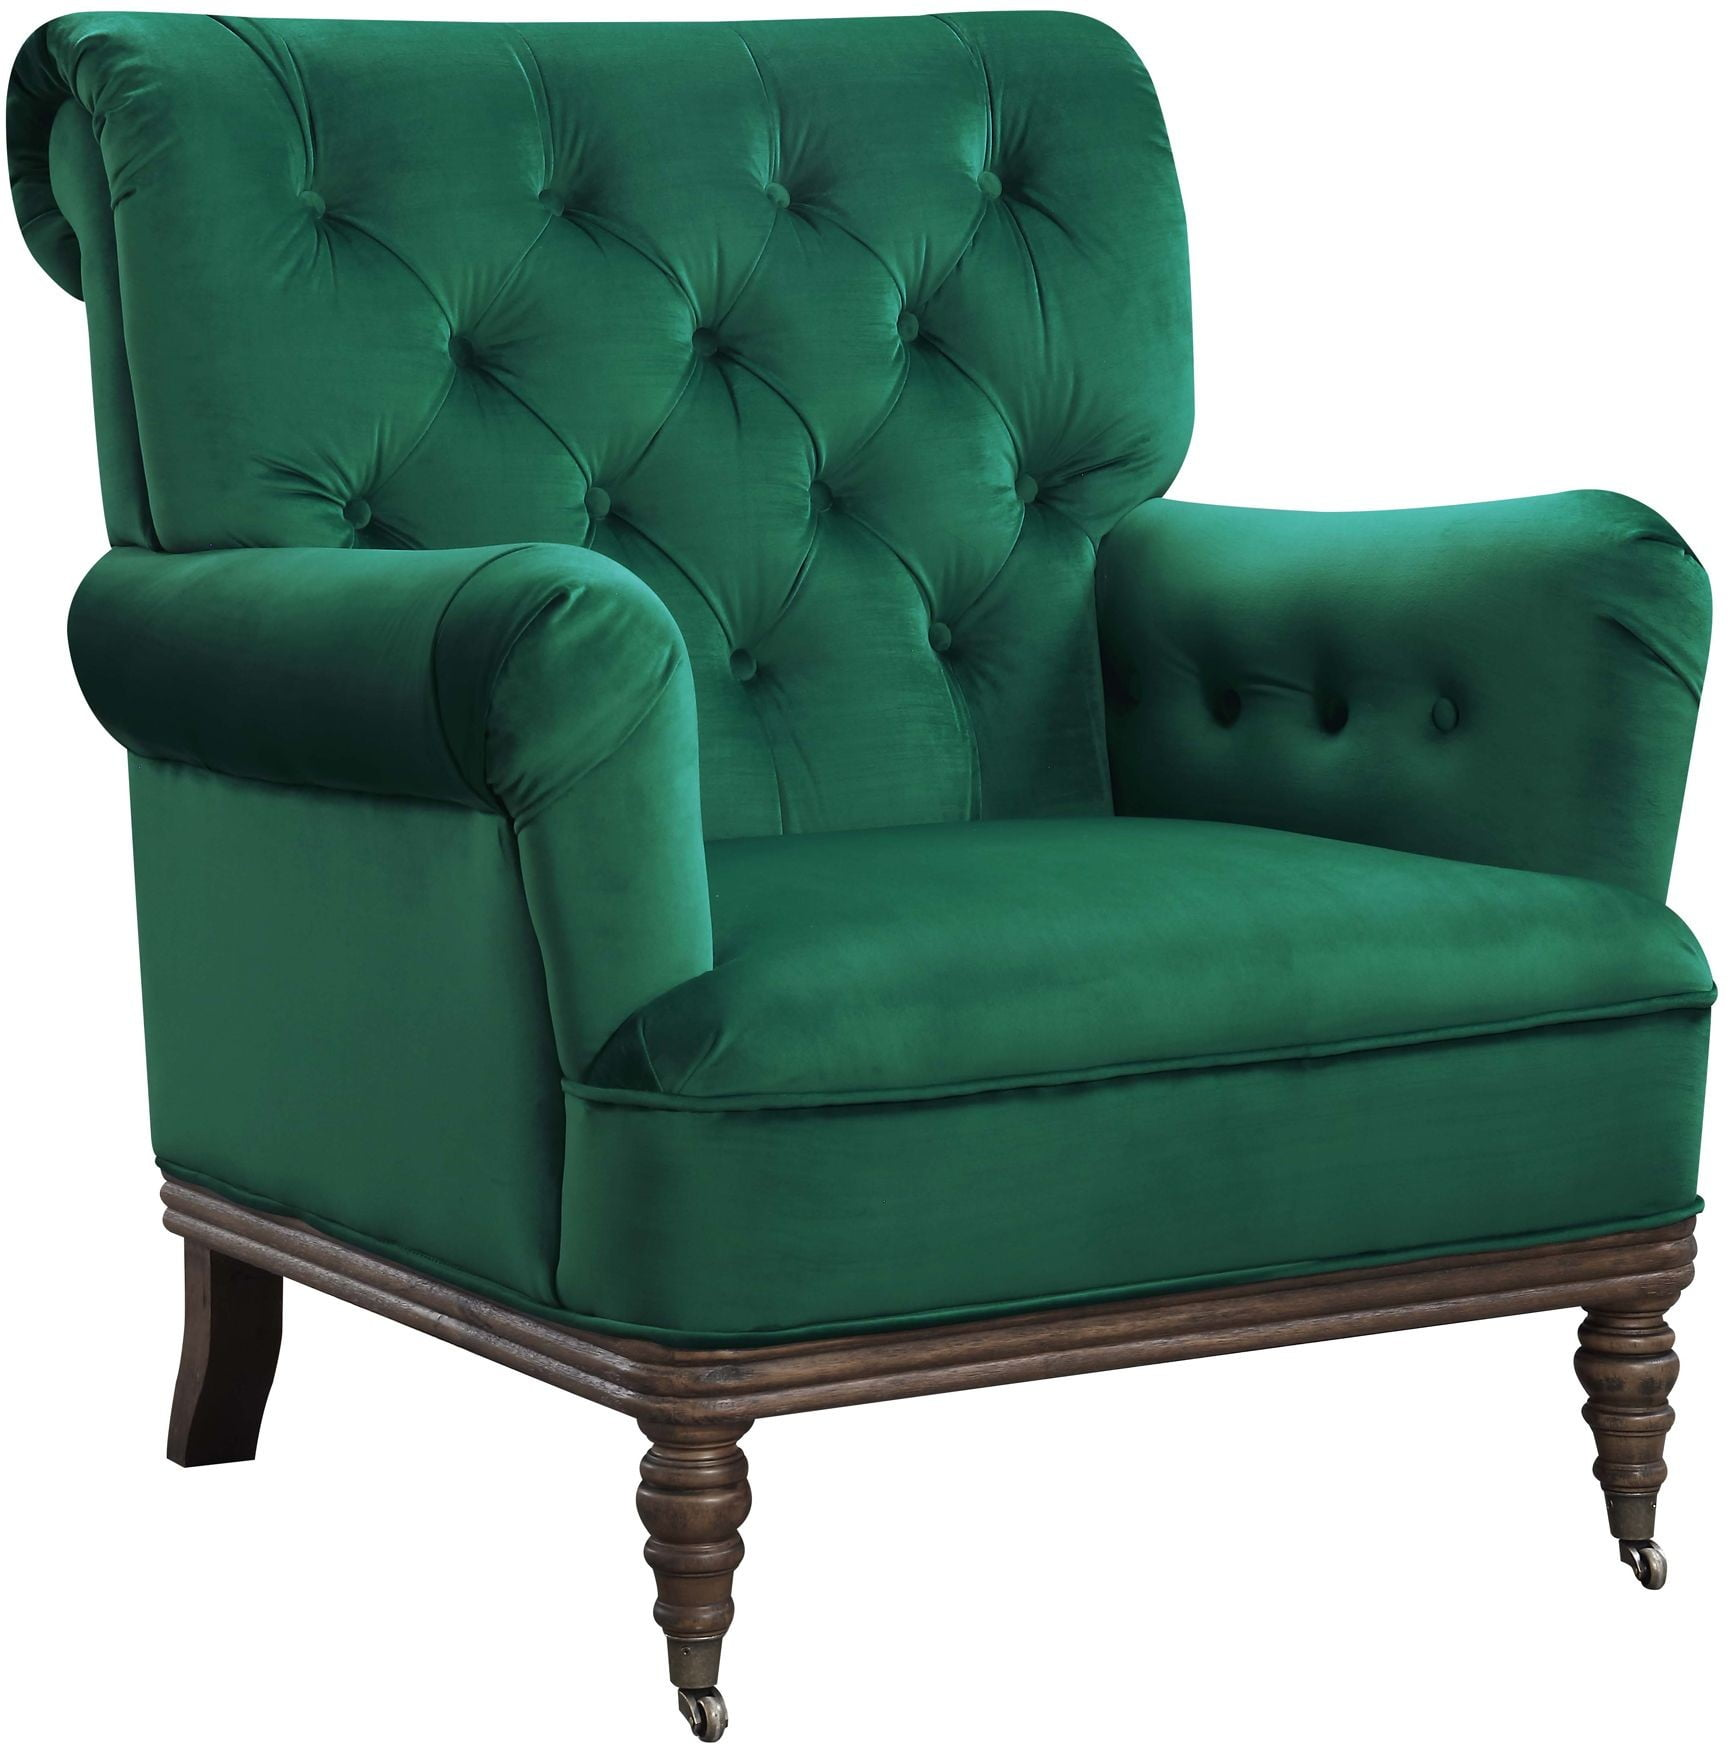 Emerald Green Accent Chair Riveria Emerald Accent Chair